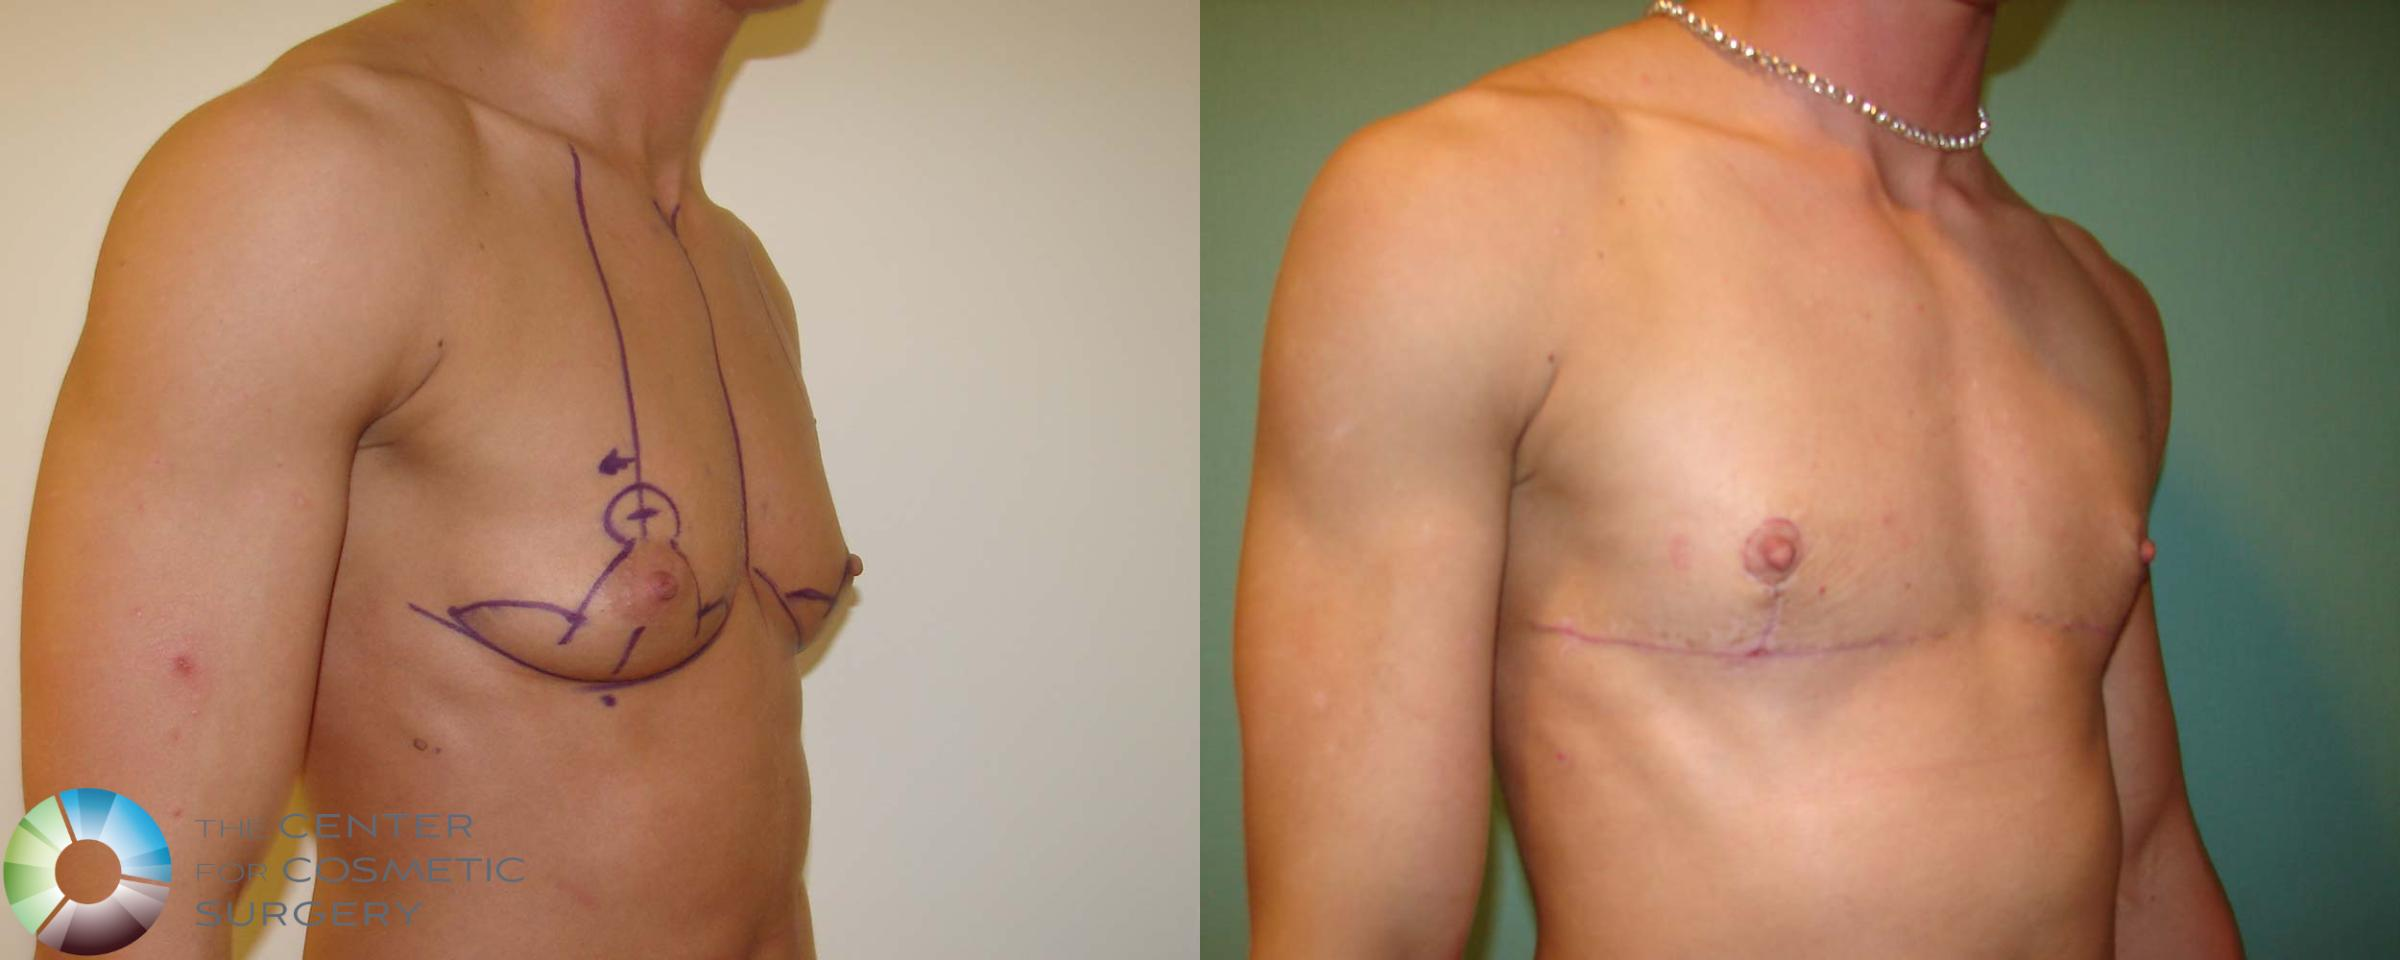 FTM Top Surgery/Chest Masculinization Case 672 Before & After View #2 | Golden, CO | The Center for Cosmetic Surgery